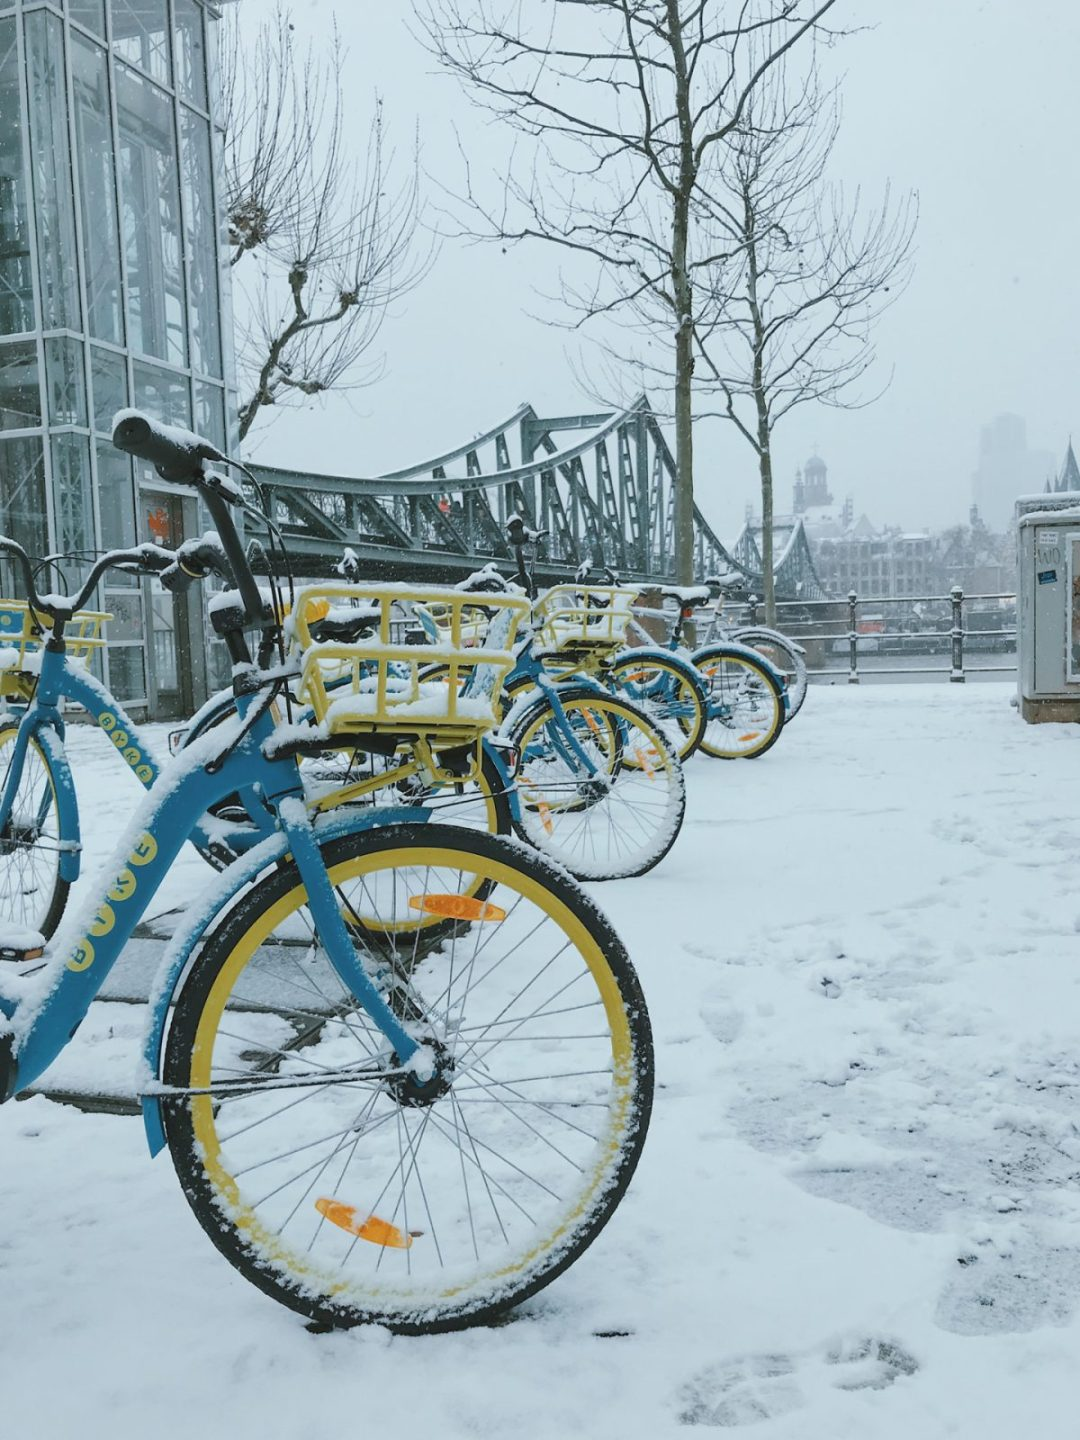 A set of bikes with snow on top.